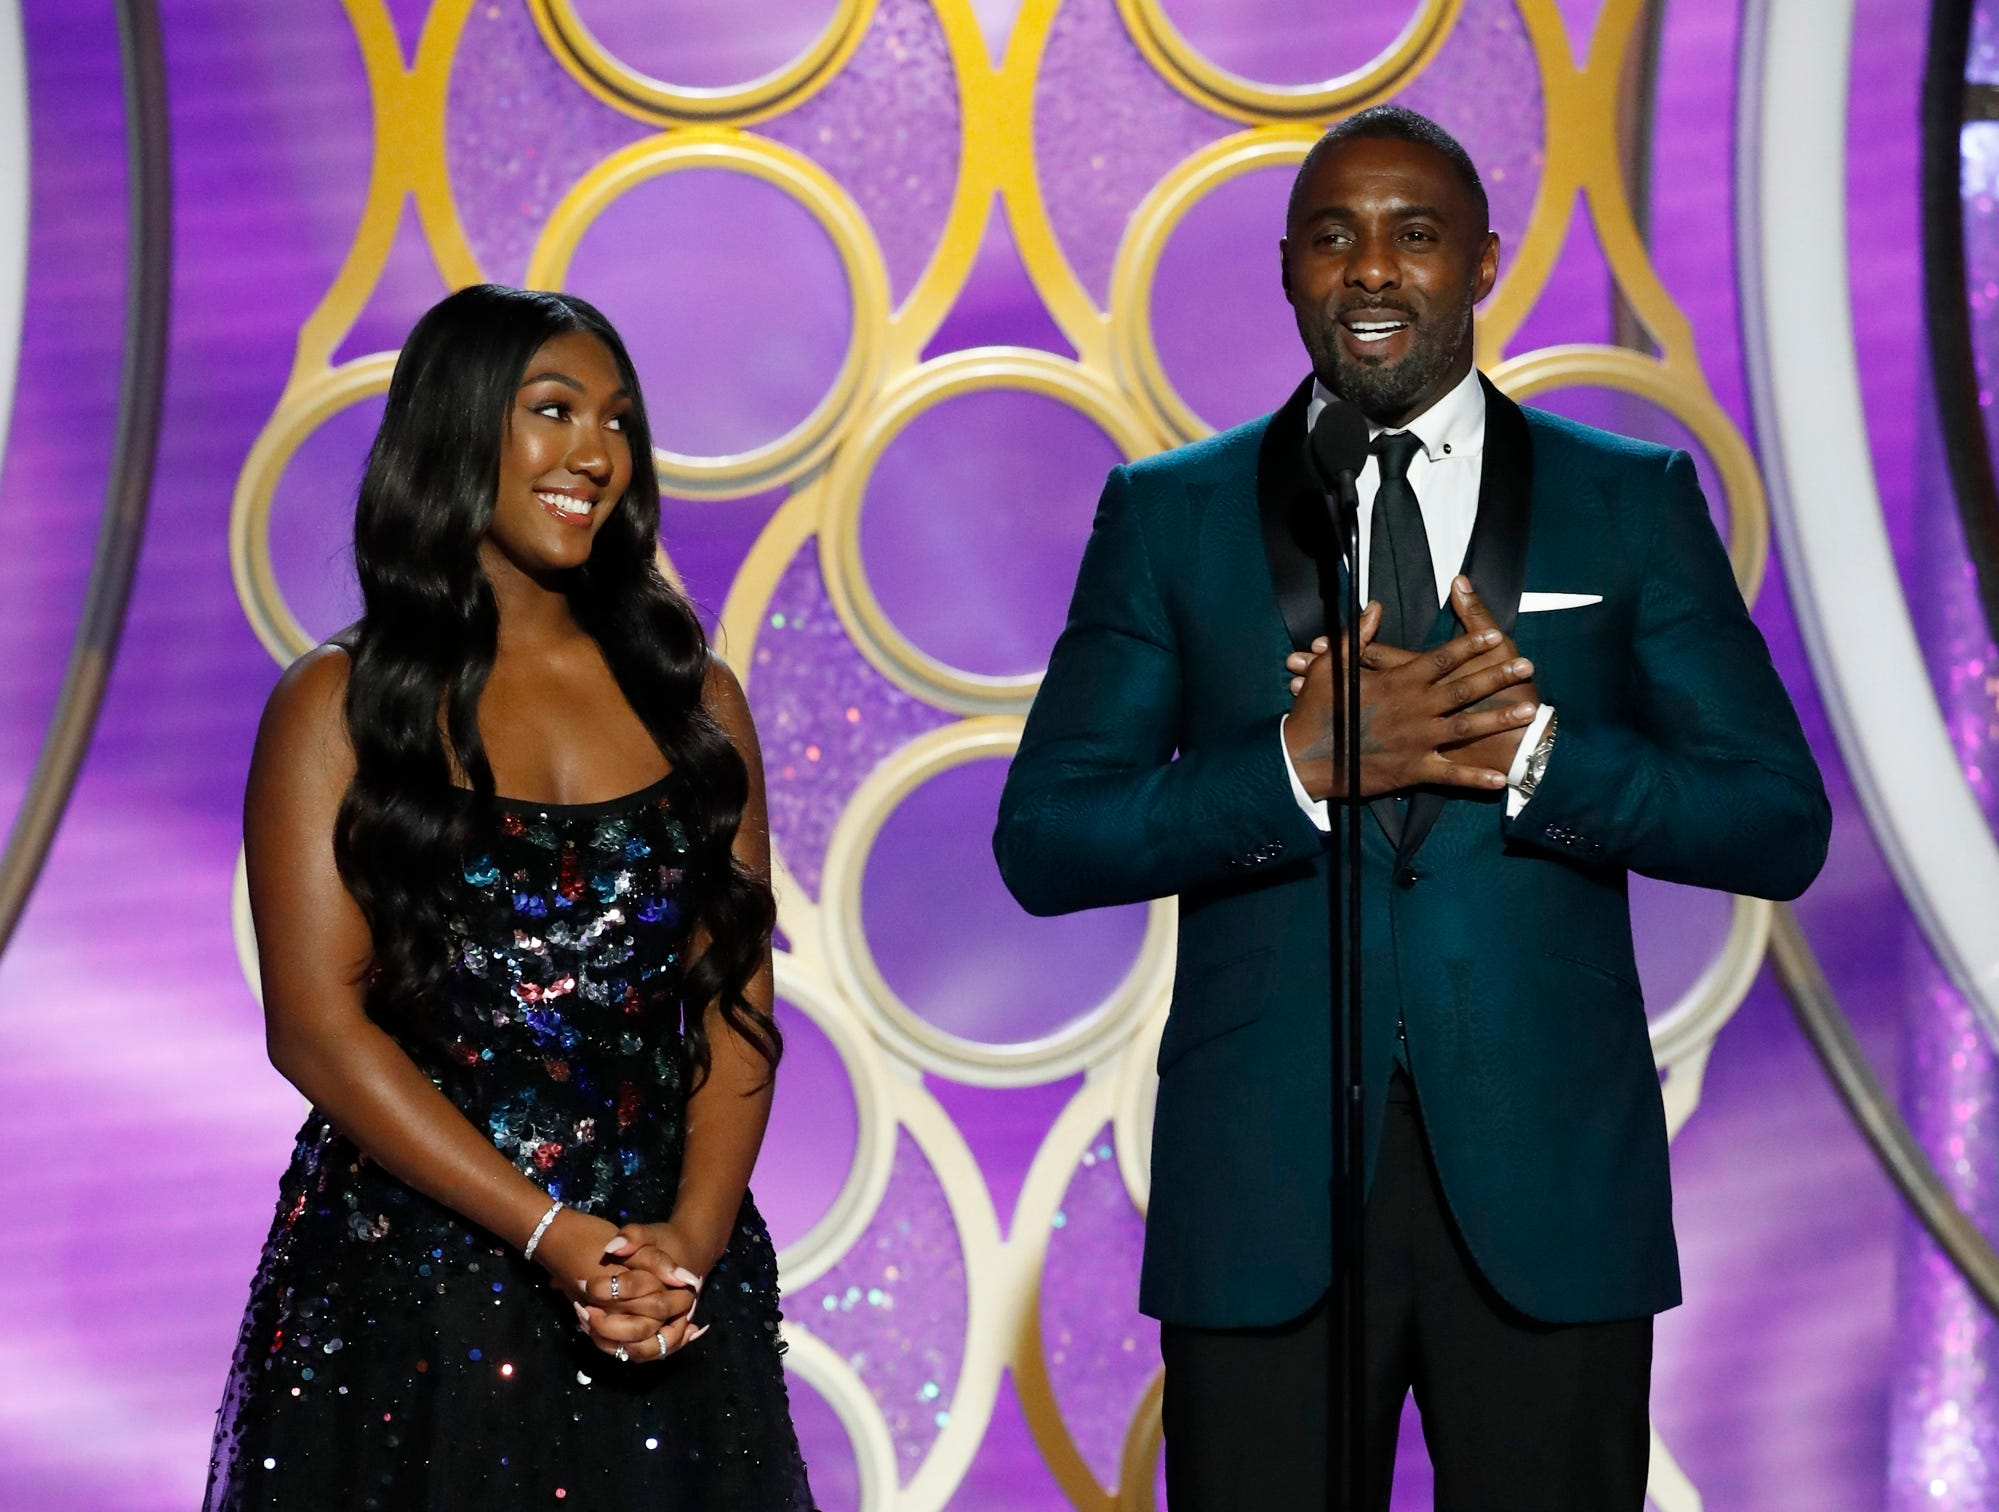 This image released by NBC shows Isan Elba, left, with her father, actor Idris Elba during the 76th Annual Golden Globe Awards at the Beverly Hilton Hotel.